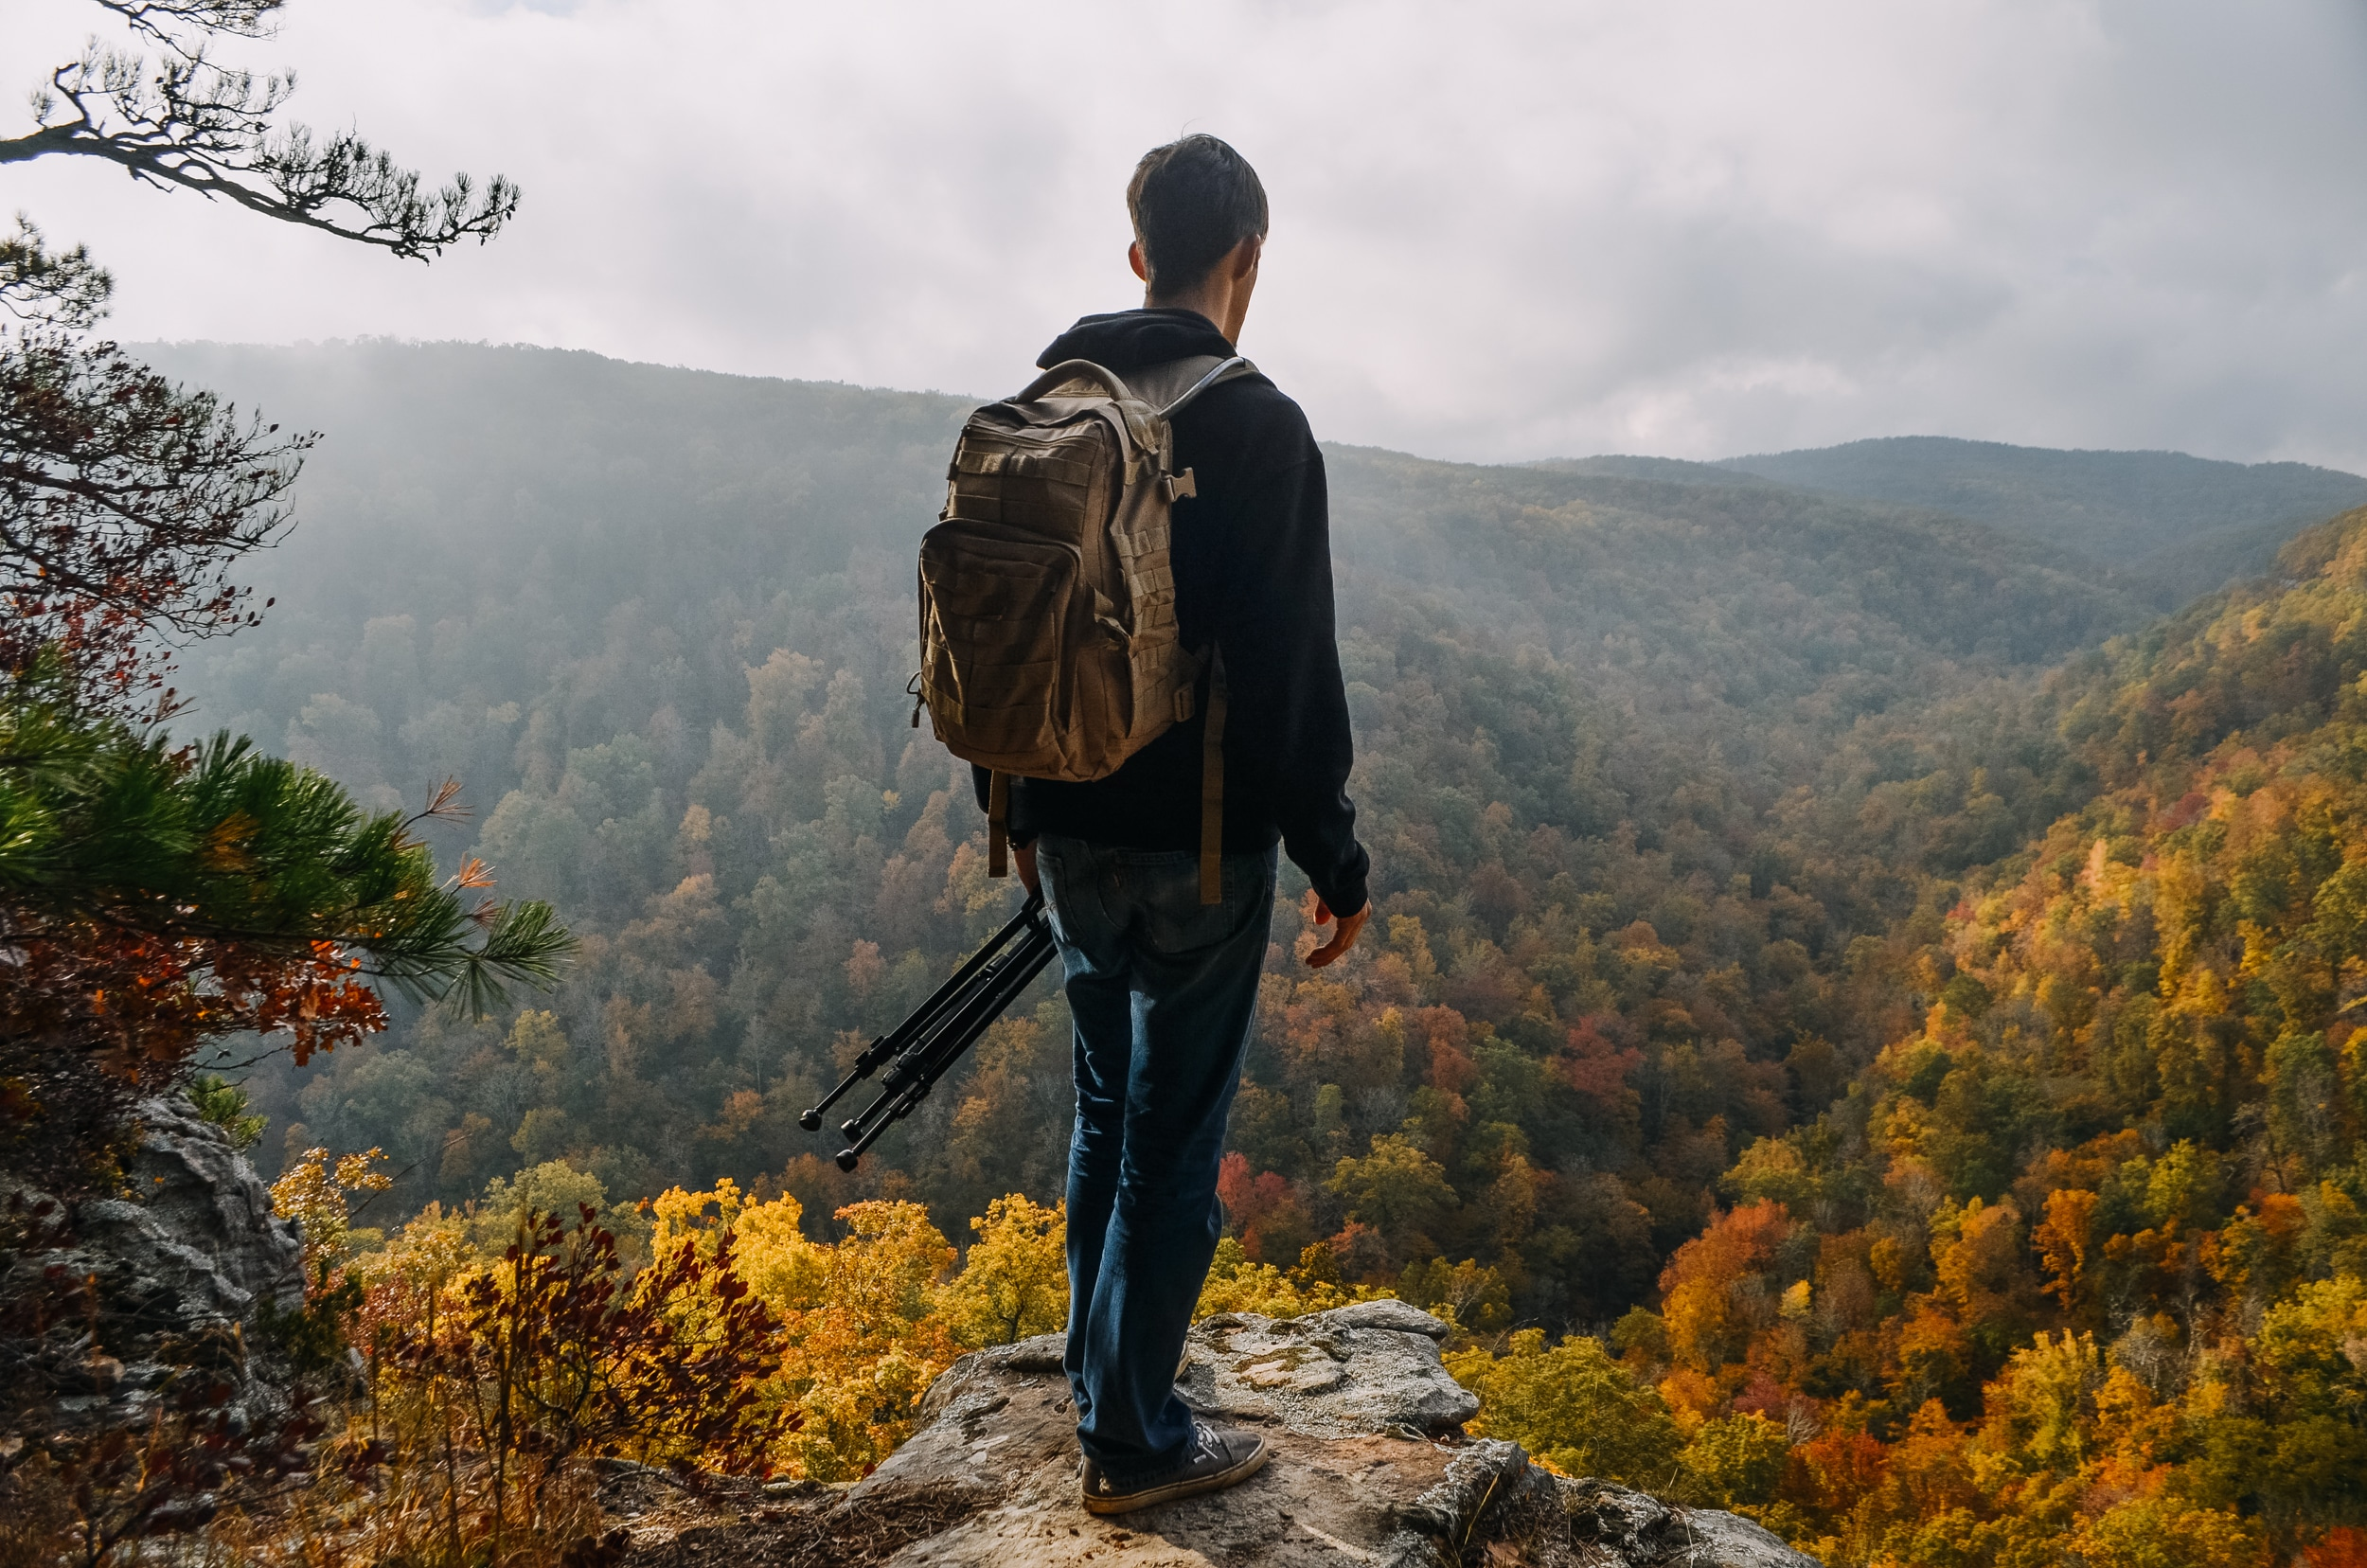 A hiker overlooking the upper Buffalo National River covered in foliage